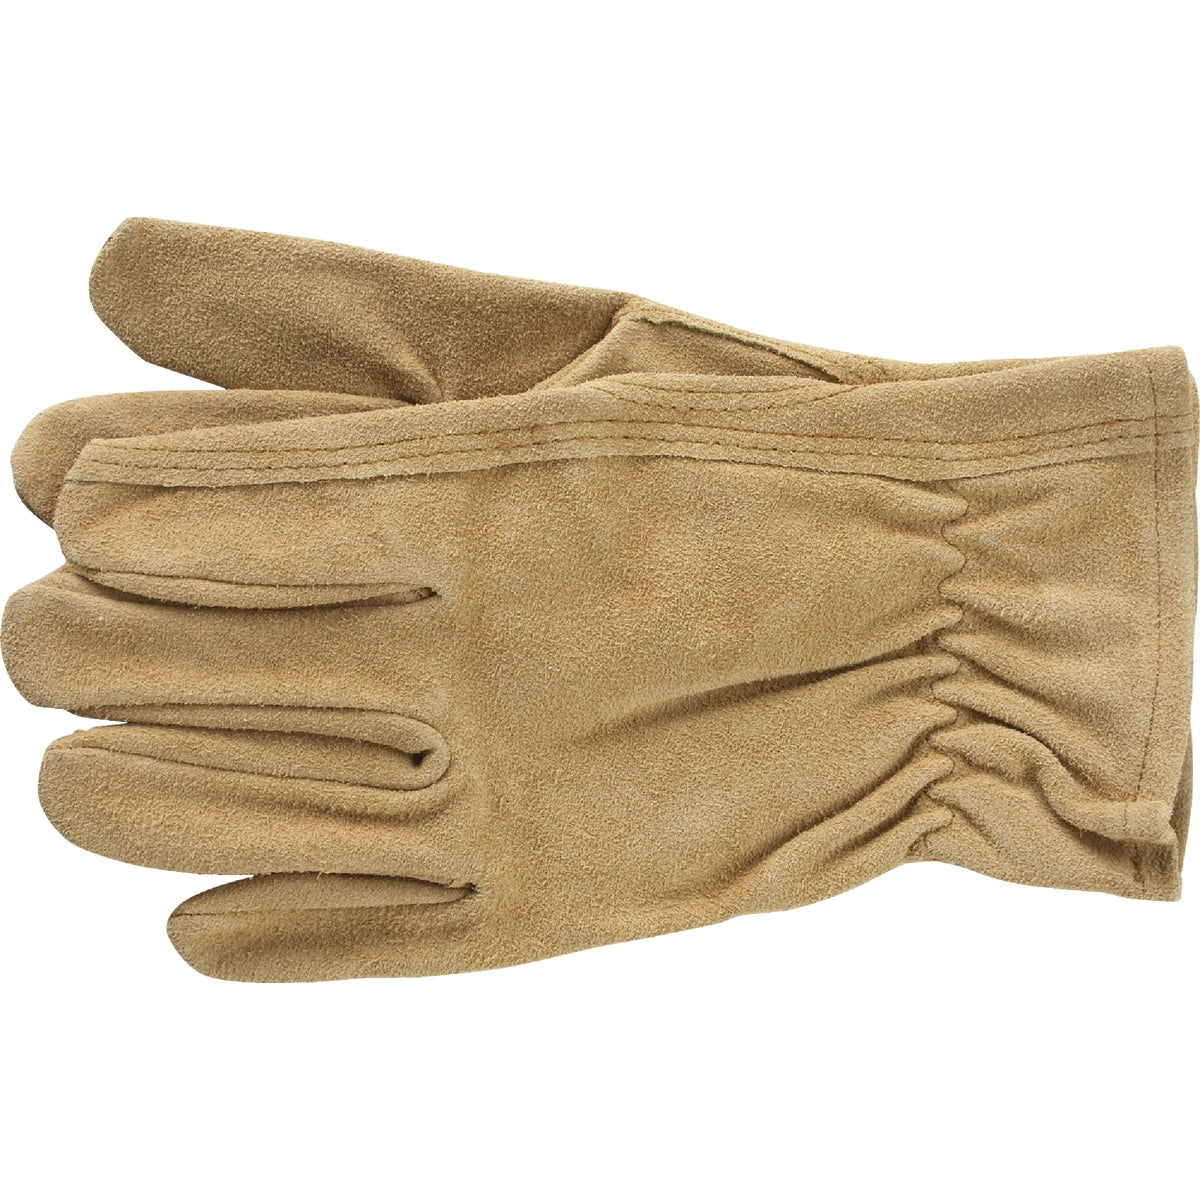 MED SUEDE LEATHER GLOVE - 728467 by Do it Best